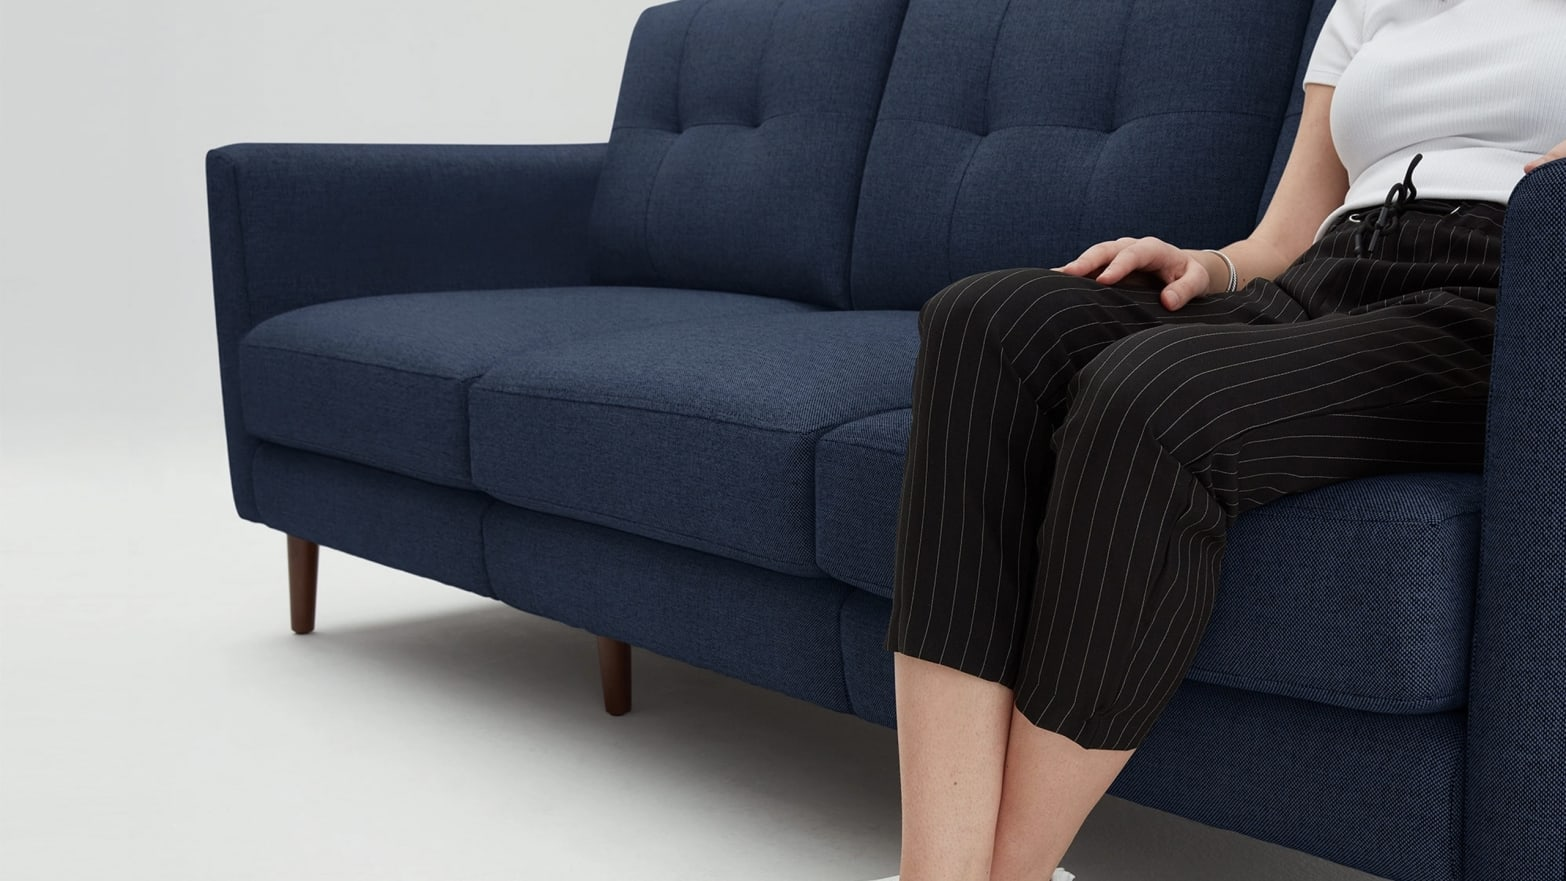 Brilliant Burrow Is Taking Up To 600 Off Flat Pack Sofas Arm Chairs Machost Co Dining Chair Design Ideas Machostcouk